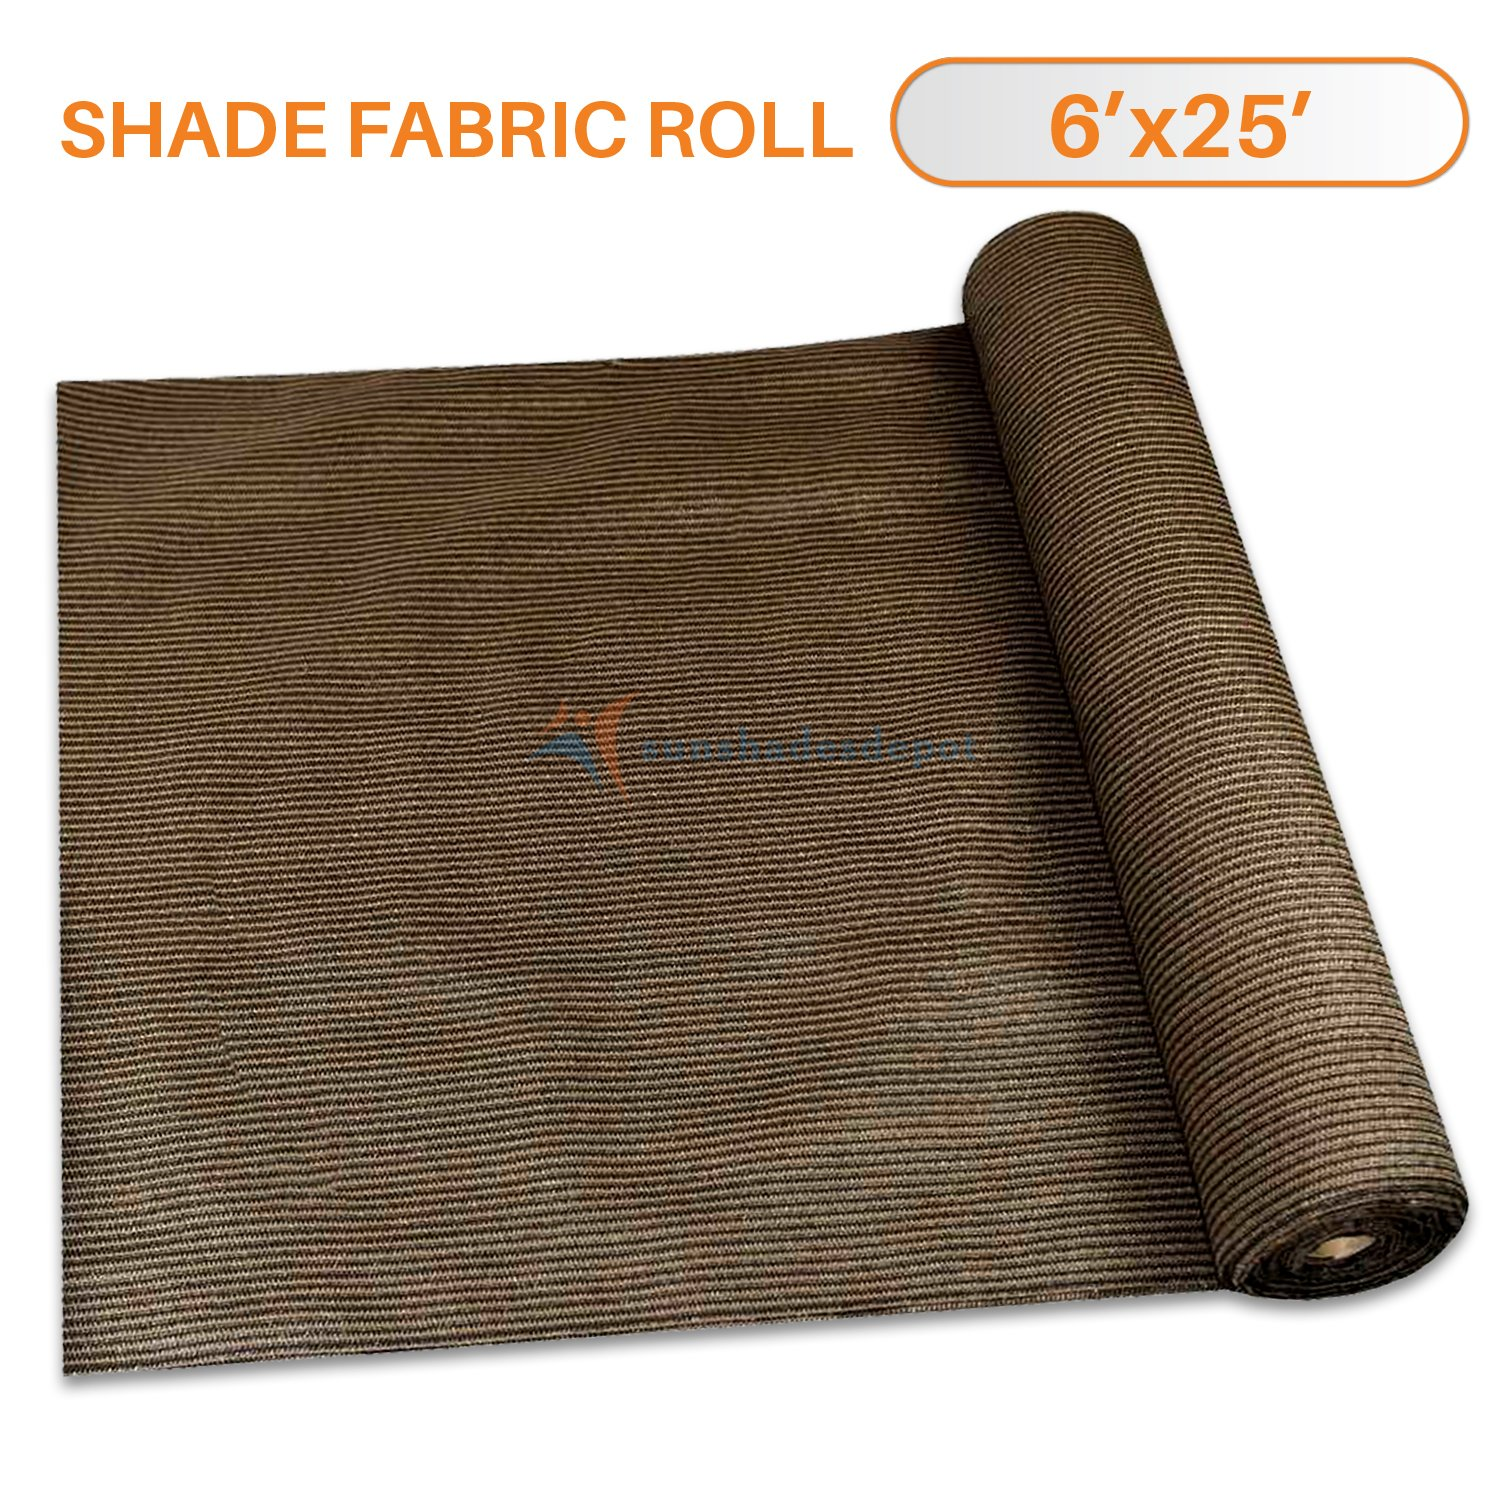 Sunshades Depot 6' x 25' Shade Cloth 180 GSM HDPE Brown Fabric Roll Up to 95% Blockage UV Resistant Mesh Net